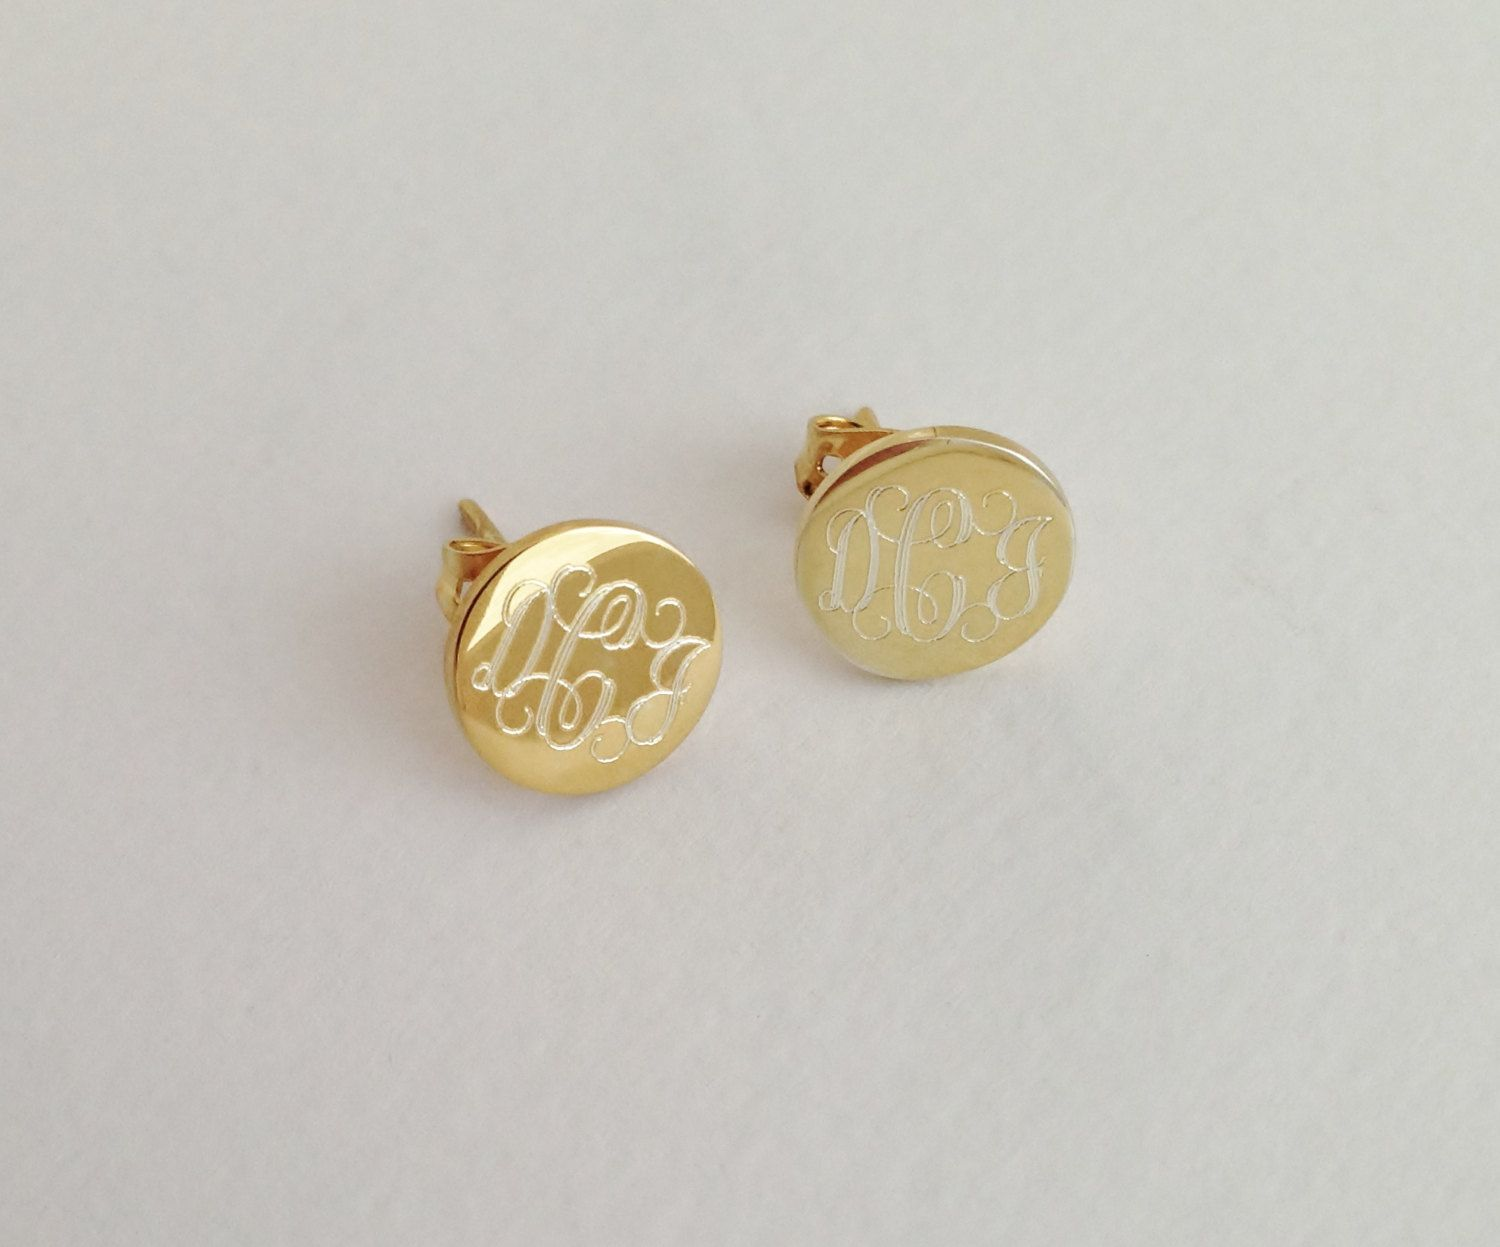 Gold Monogram Stud Earrings Personalized Jewelry For Valentines Day By Netexchange On Etsy